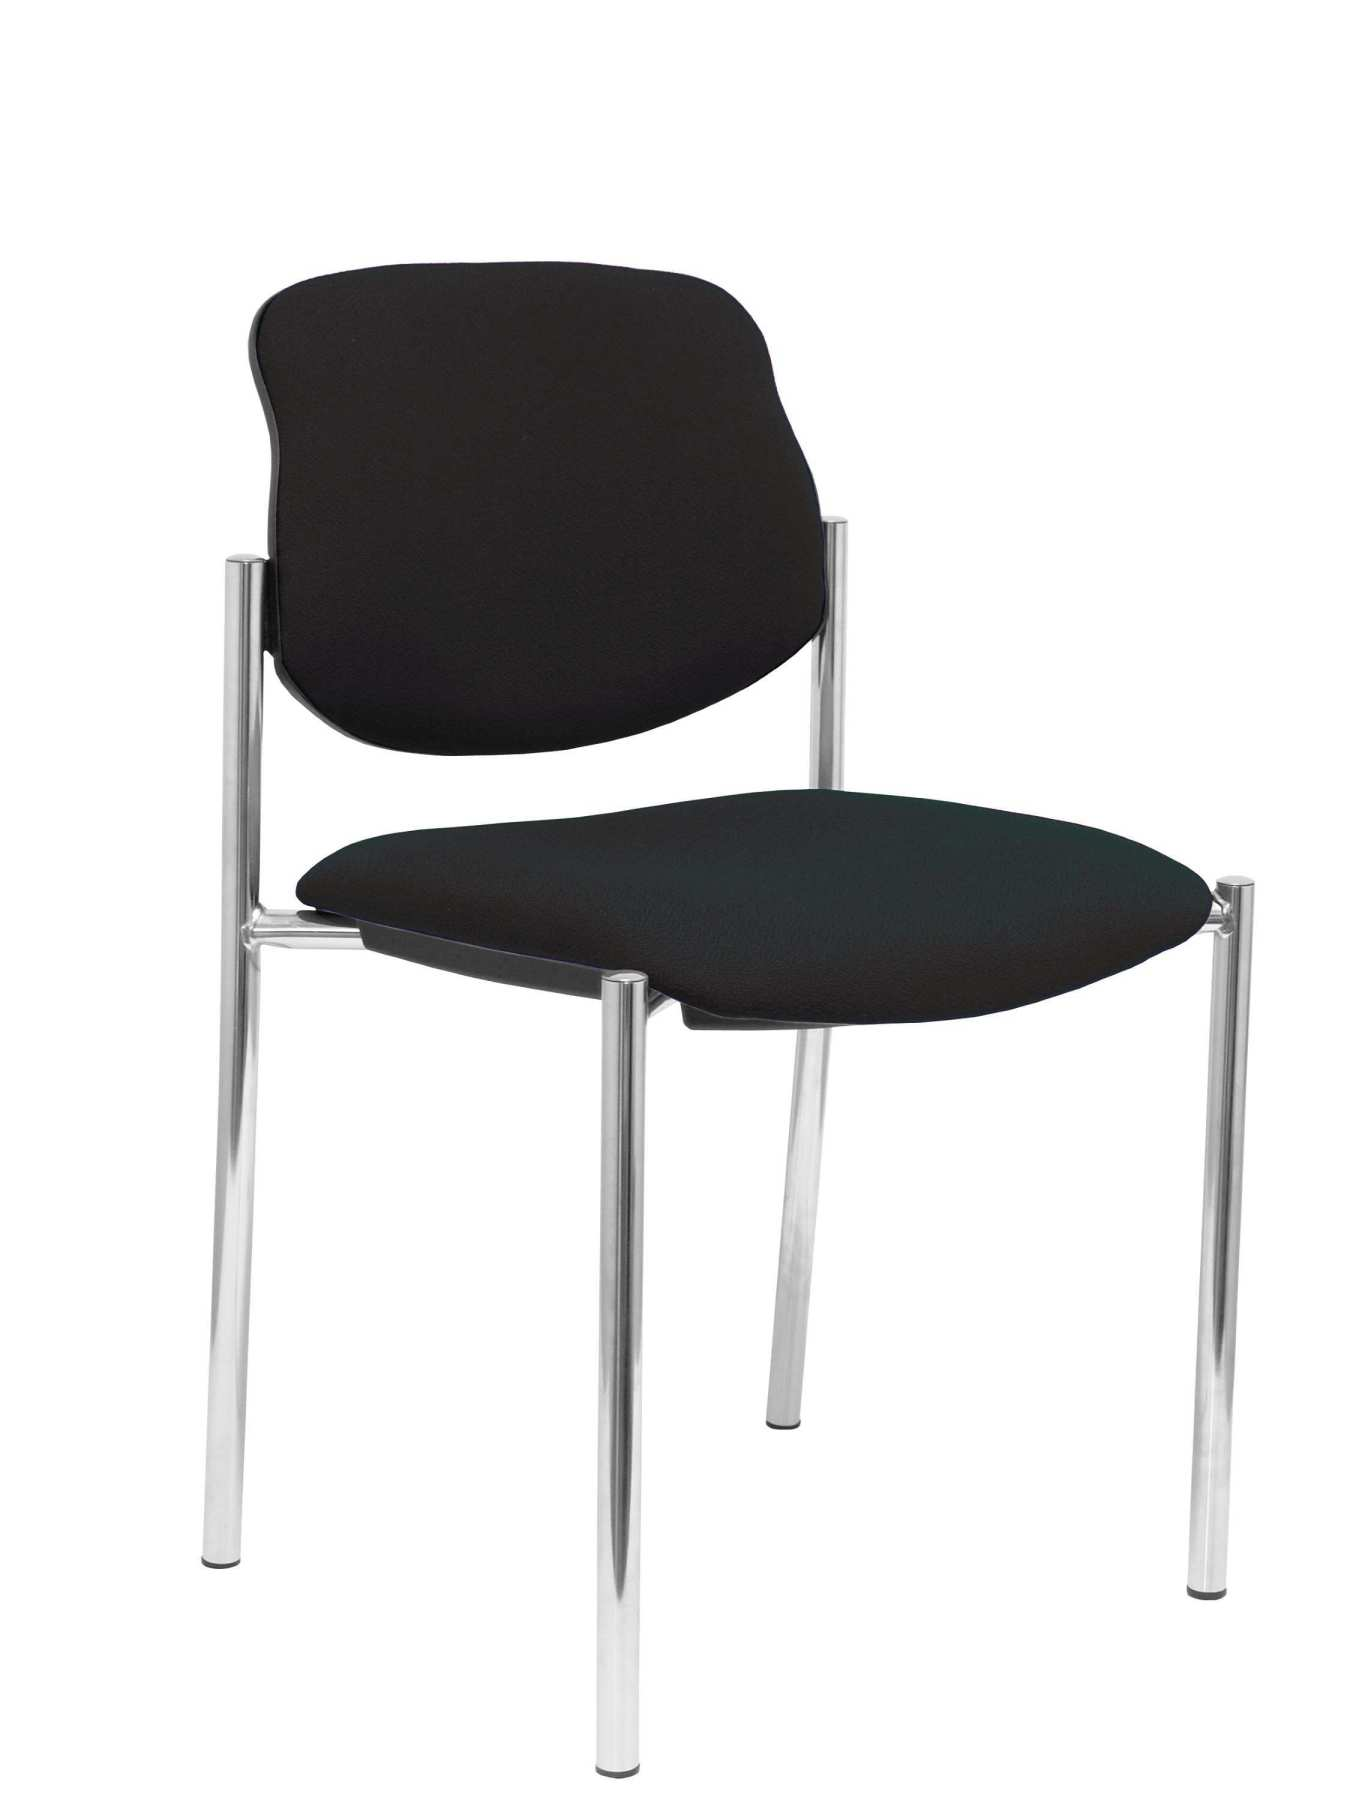 Confident Chair 4-leg And Estructrua Chrome Seat And Back Upholstered In Fabric BALI Color Black PIQUERAS And CR